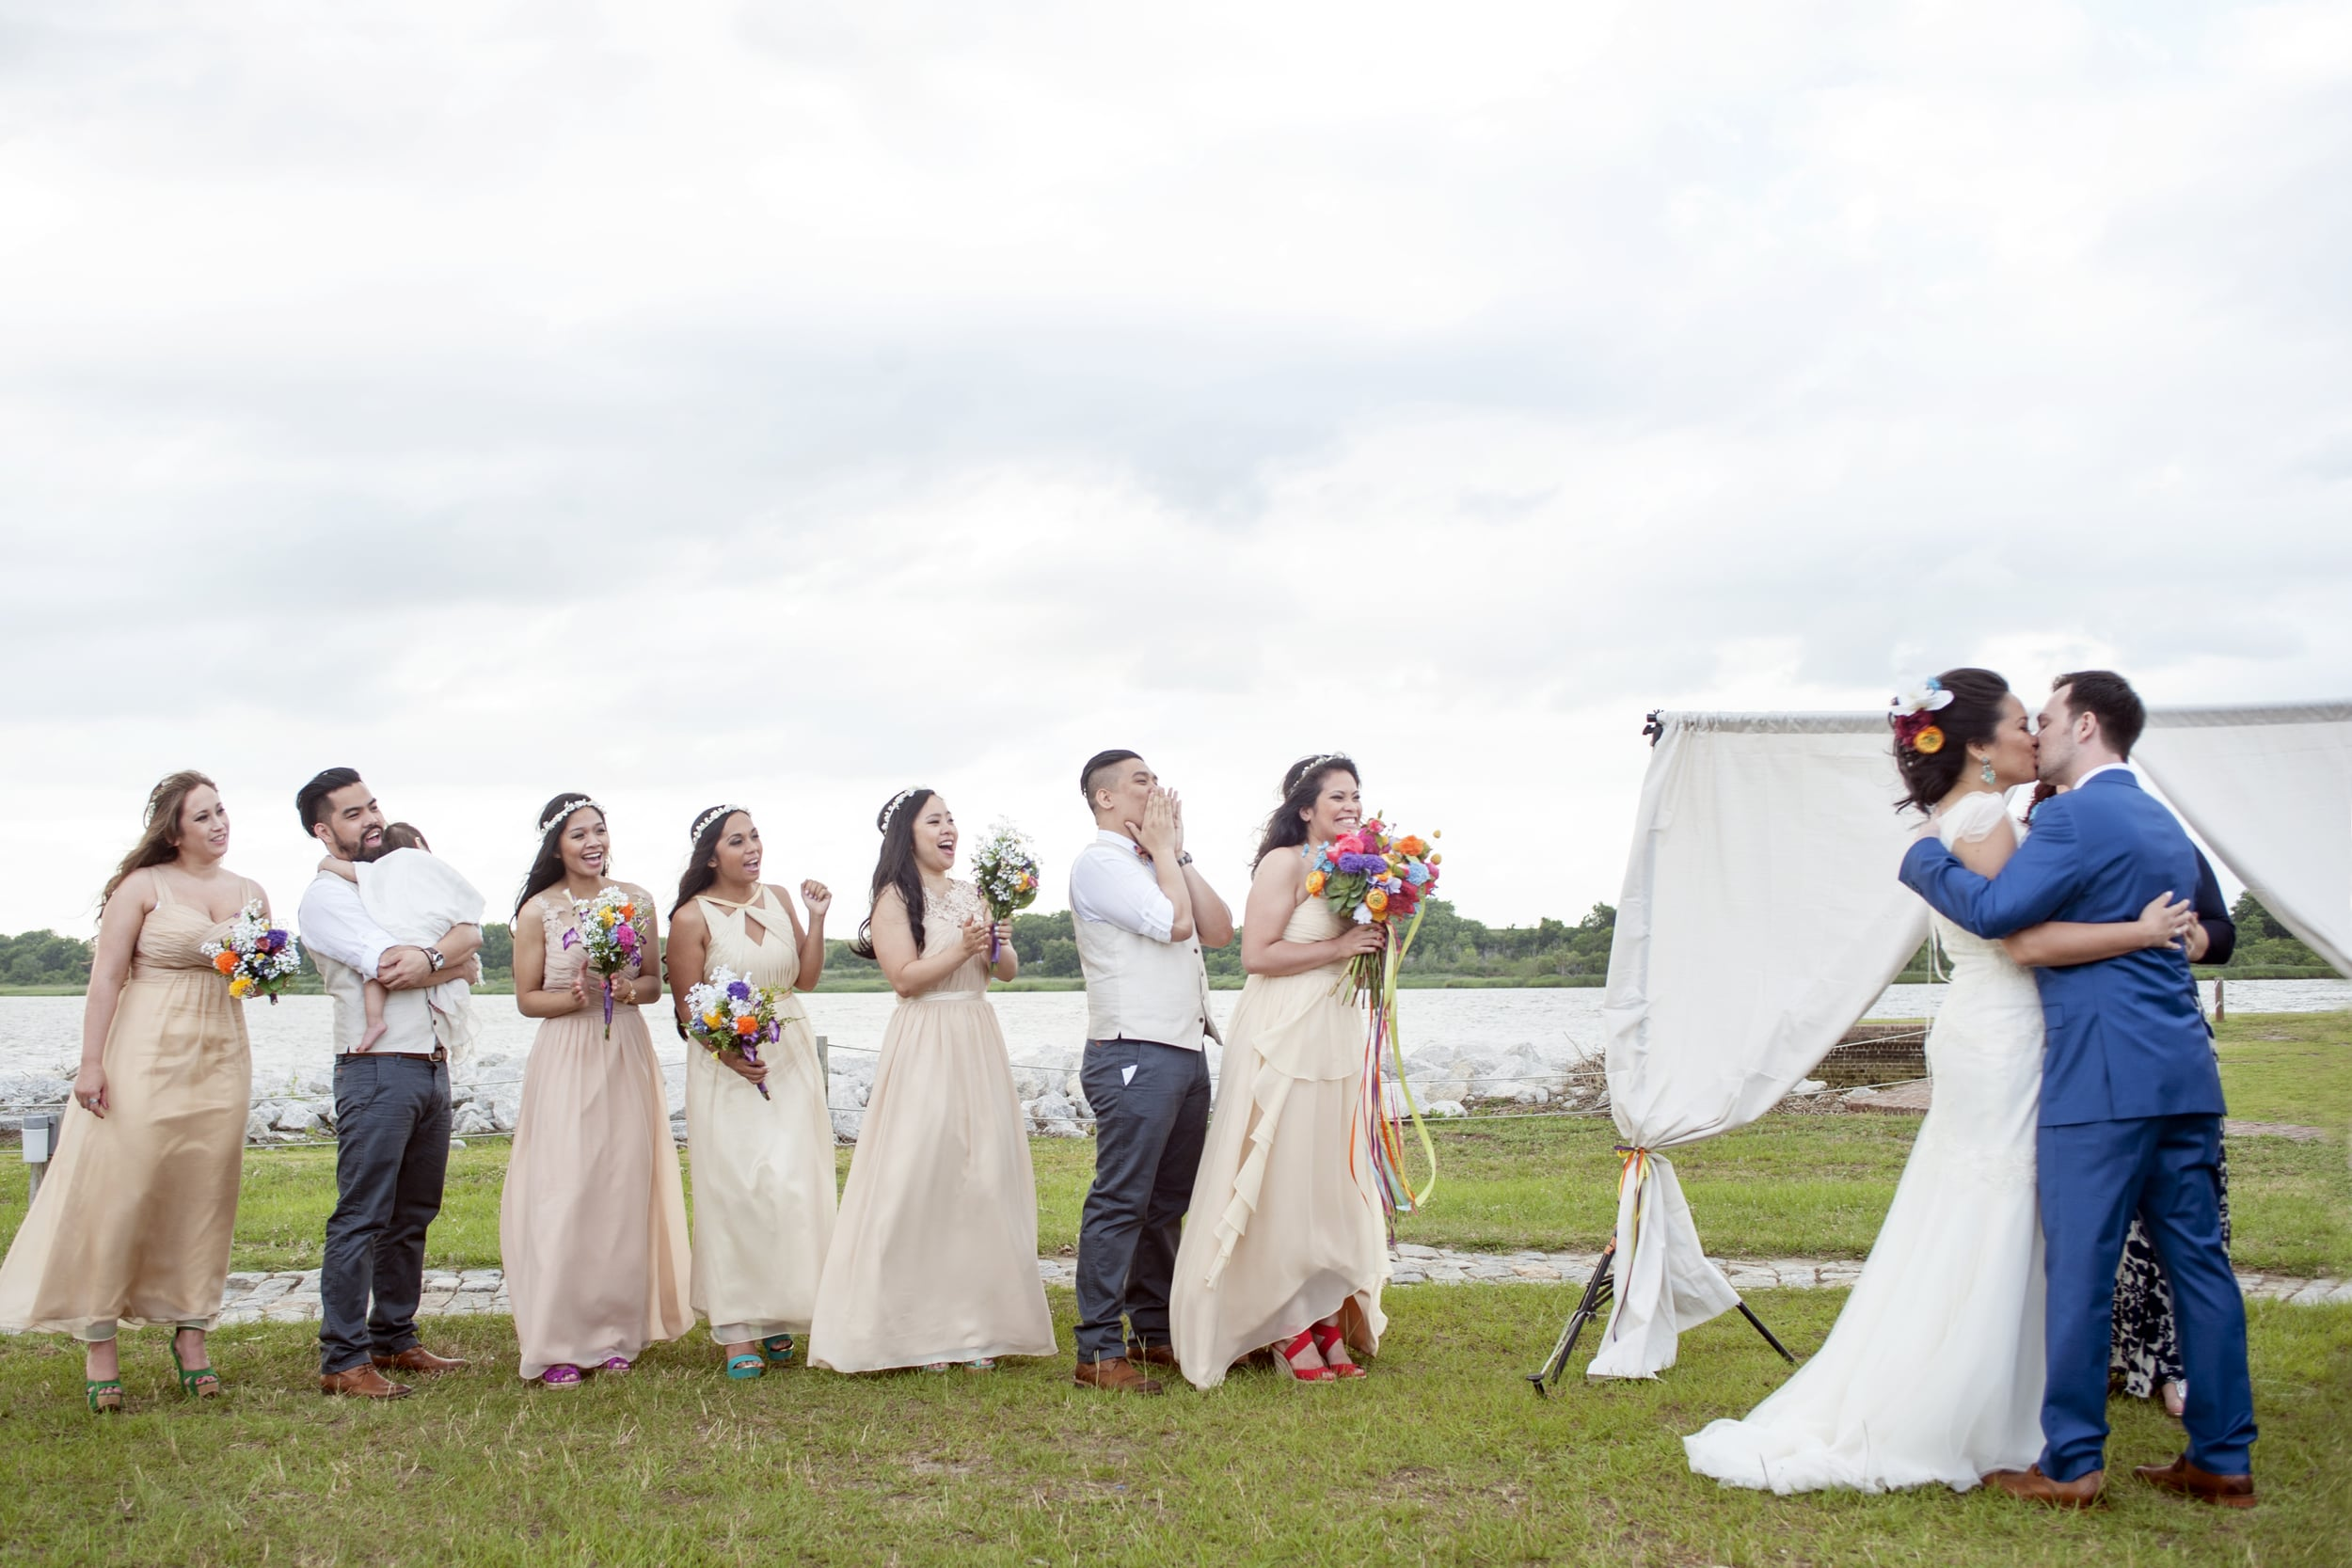 jeff-and-mollie-take-pictures-ivory-and-beau-wedding-planning-ivory-and-beau-bridal-boutique-old-fort-jackson-wedding-colorful-wedding-savannah-wedding-planner-savannah-weddings-michelle-and-johnny-wedding-savannah-weddings-indie-wedding-36.jpg